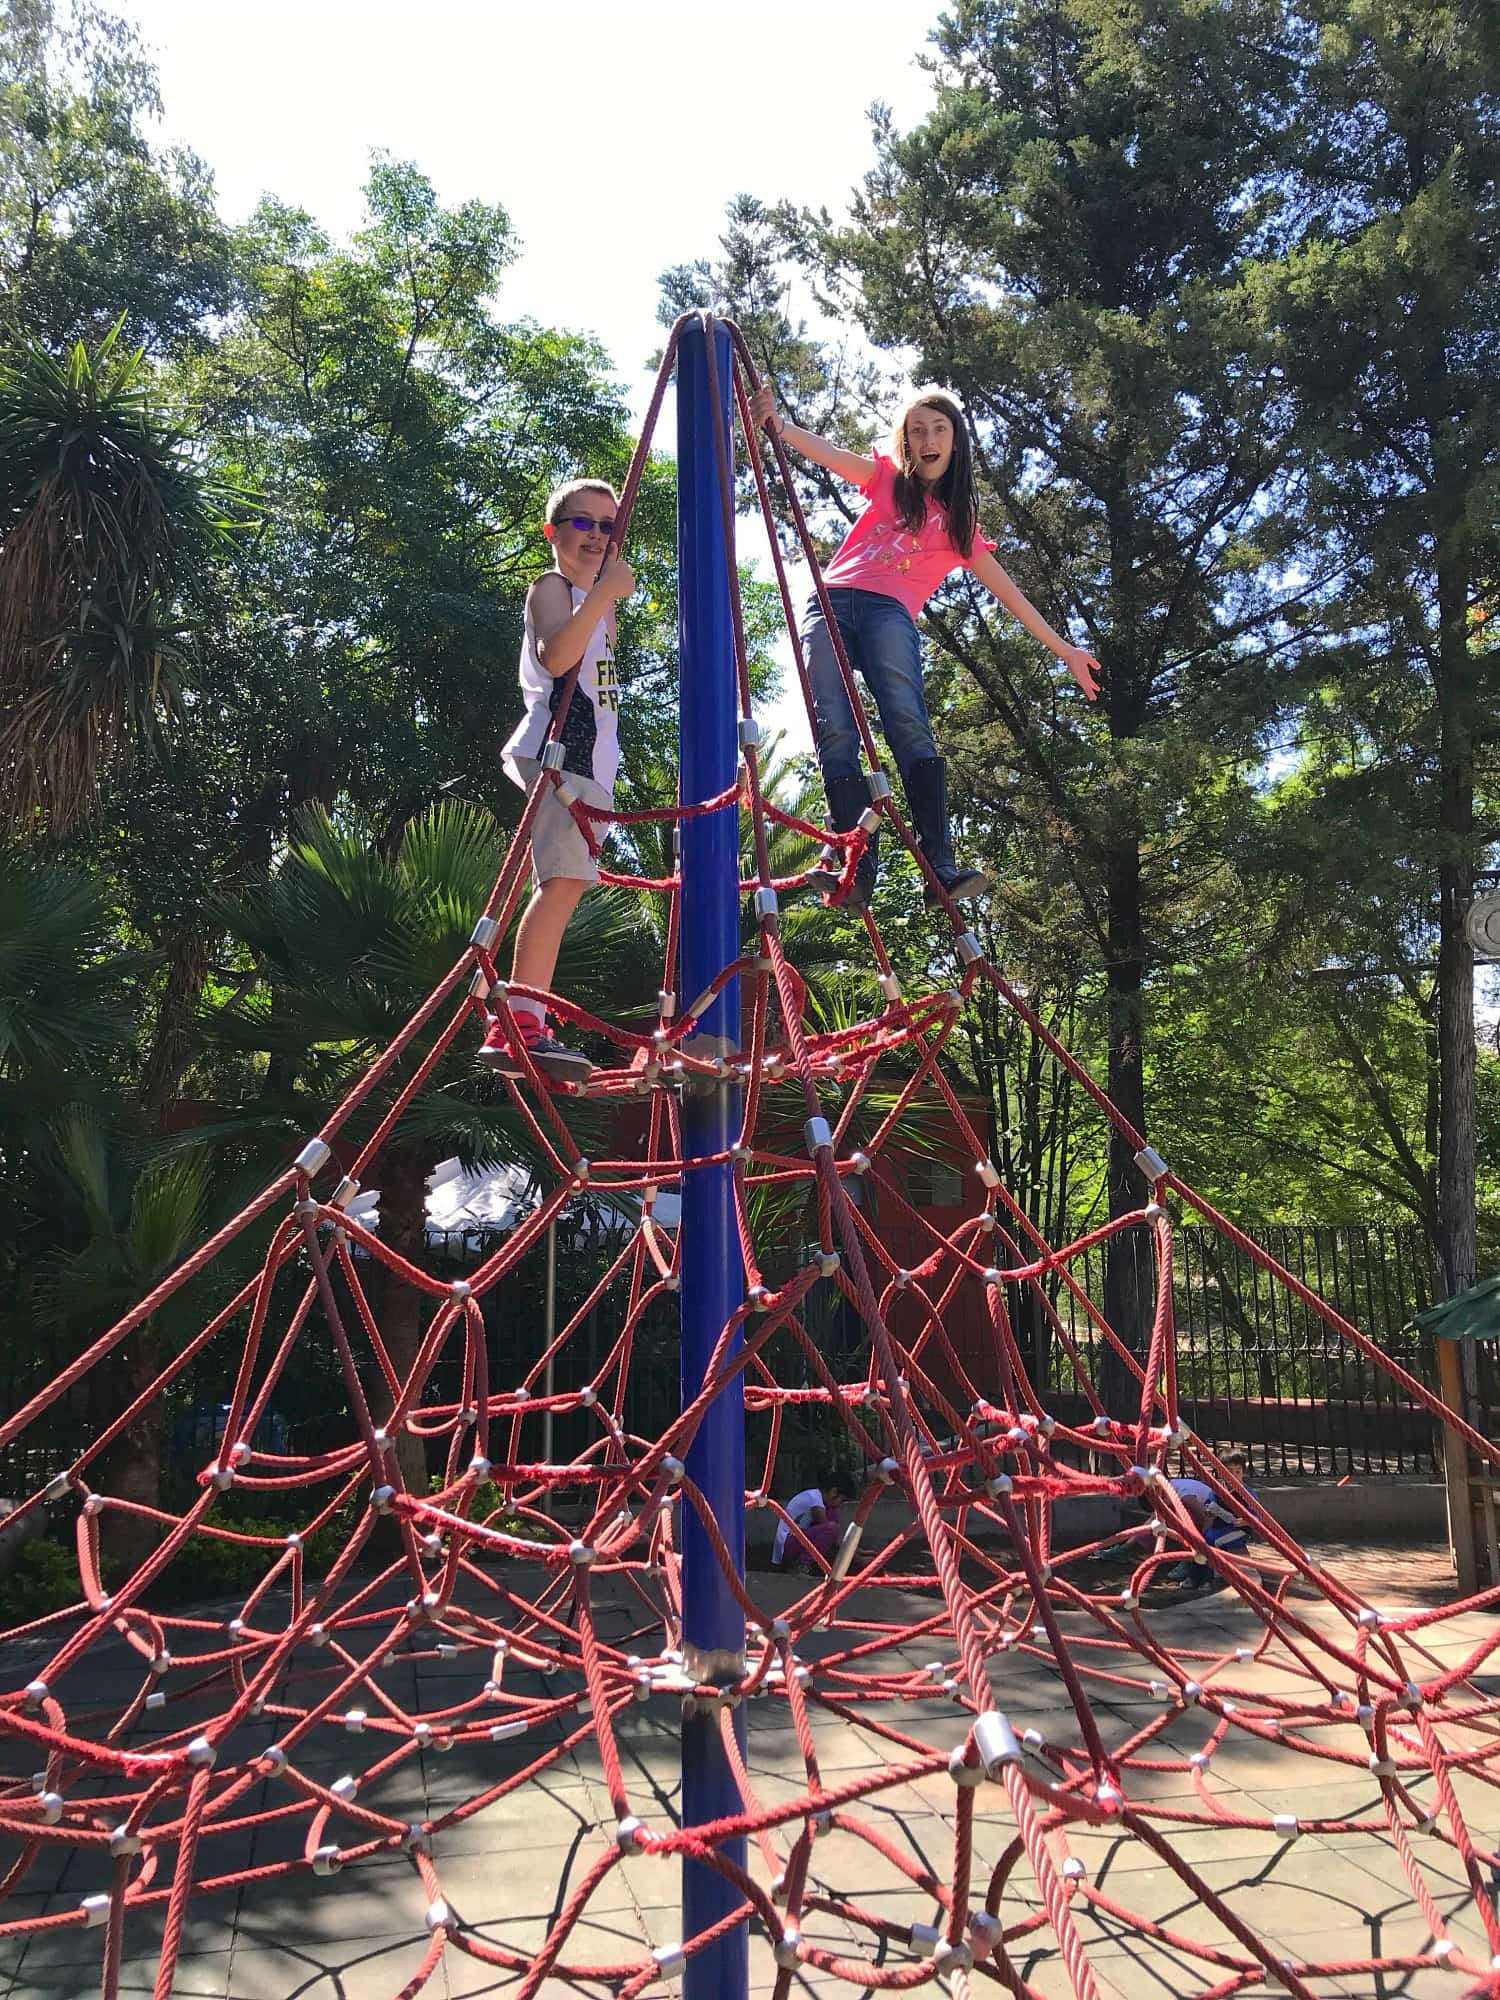 My kids loved the climbing structure in the playground at Parque Benito Juarez